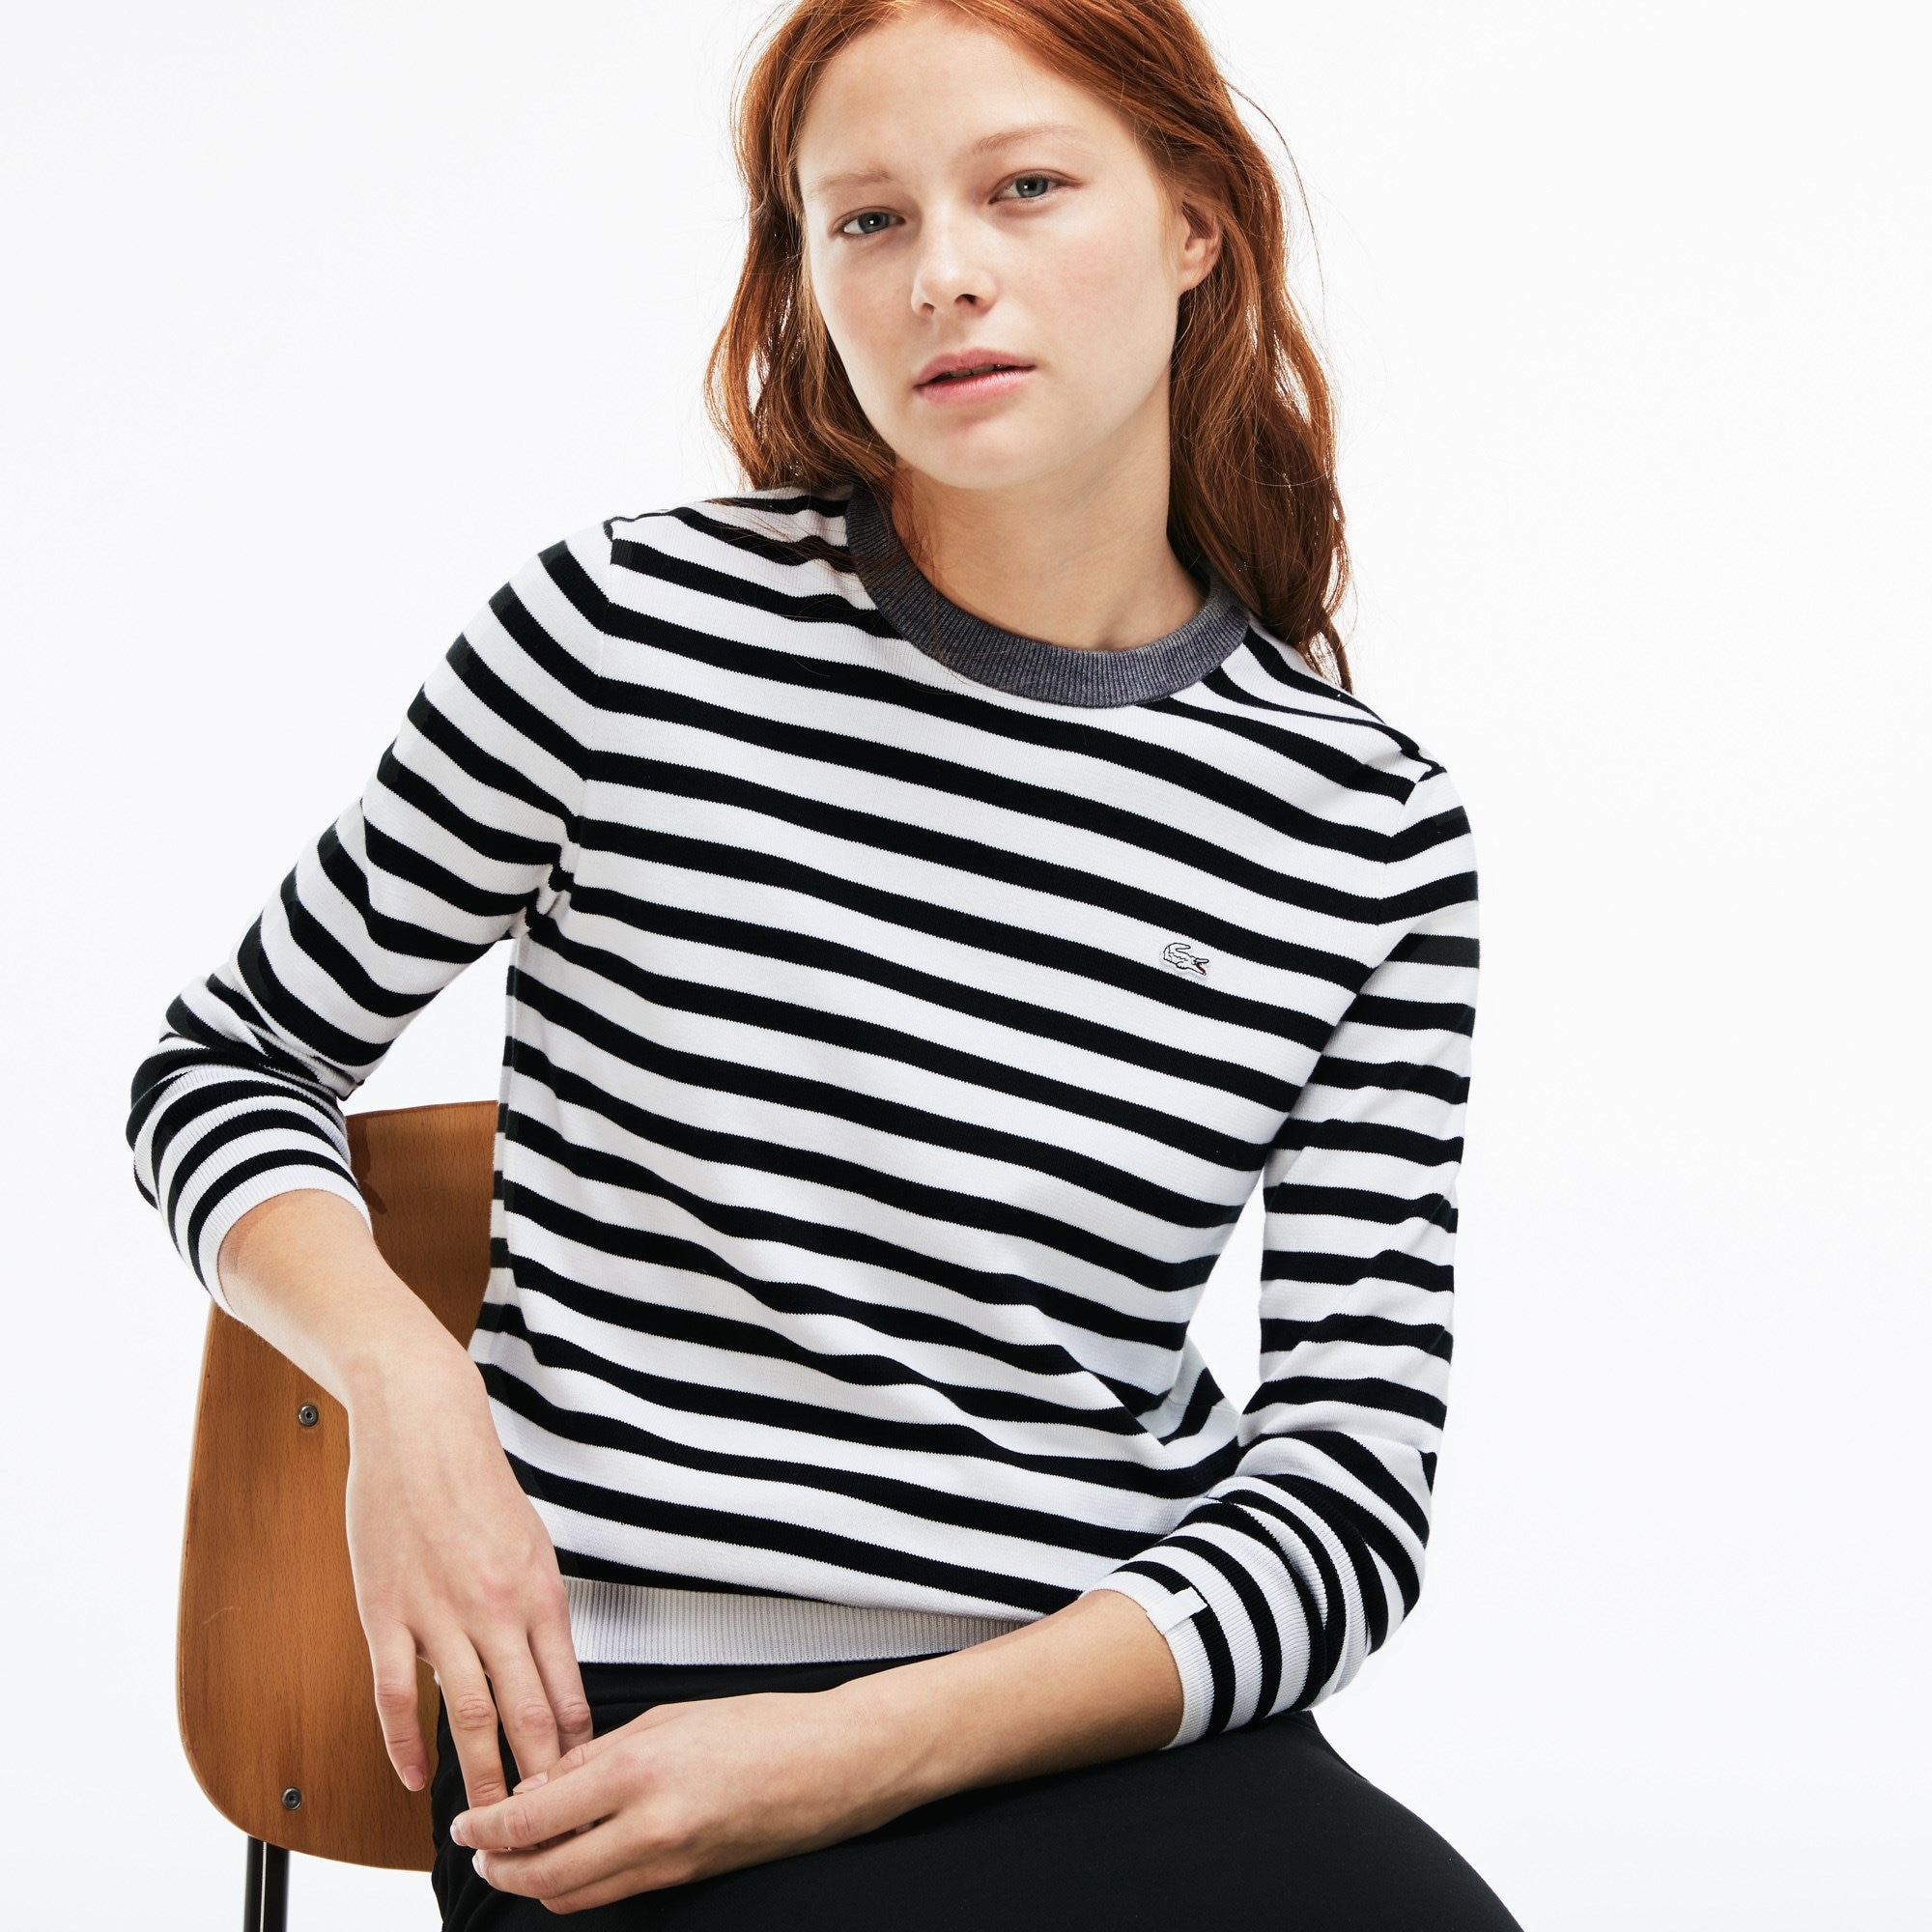 Women's Lacoste LIVE Crew Neck Striped Cotton Jersey Sweater